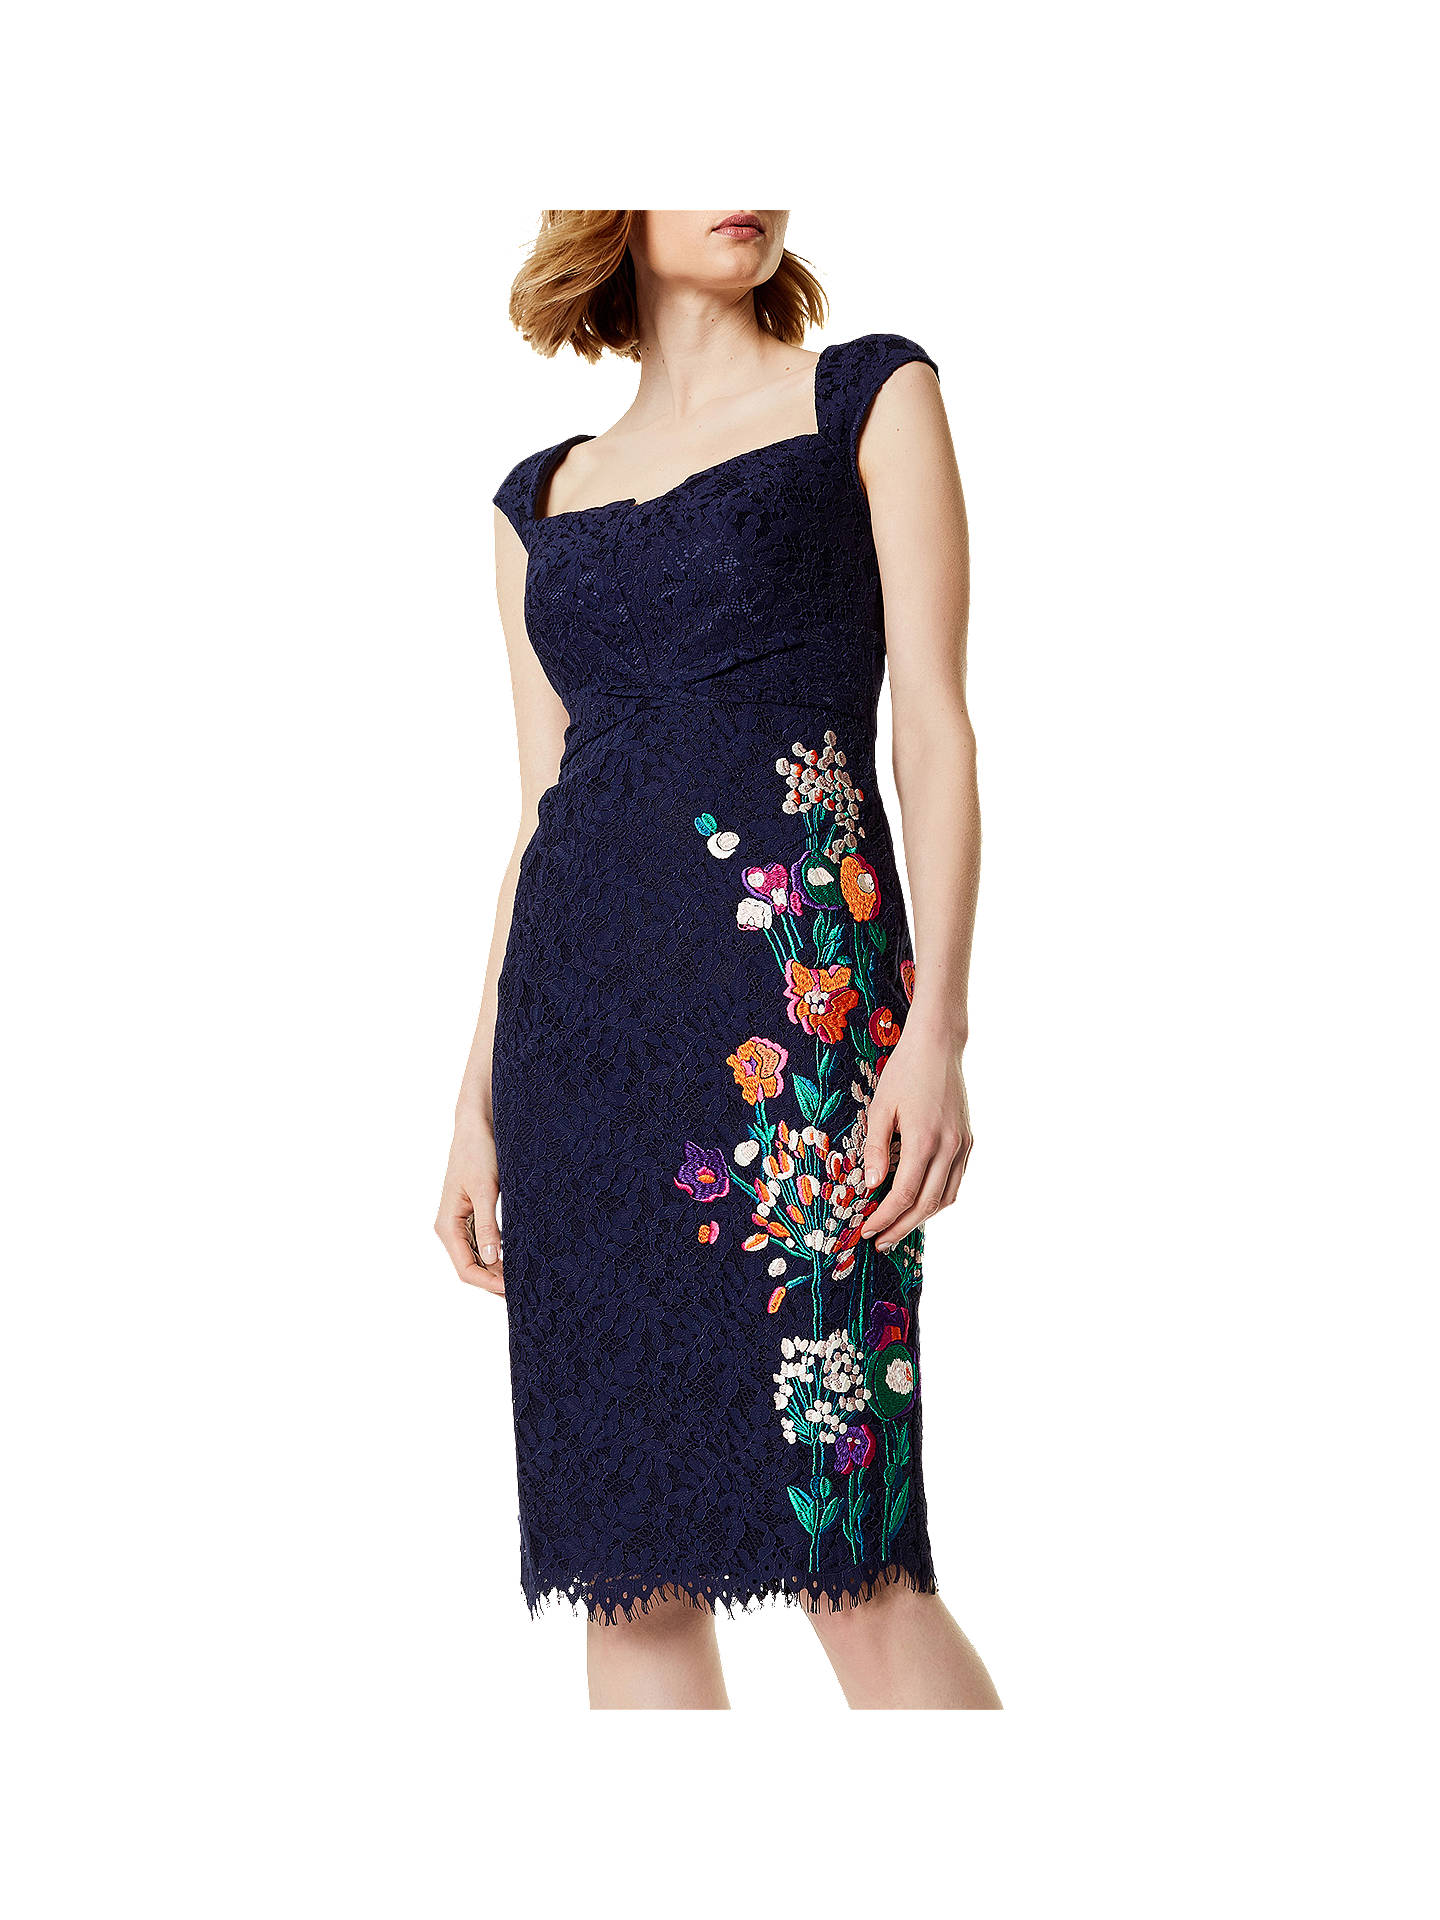 BuyKaren Millen Flower Bouquet Embroidery Lace Dress, Navy/Multi, 6 Online at johnlewis.com